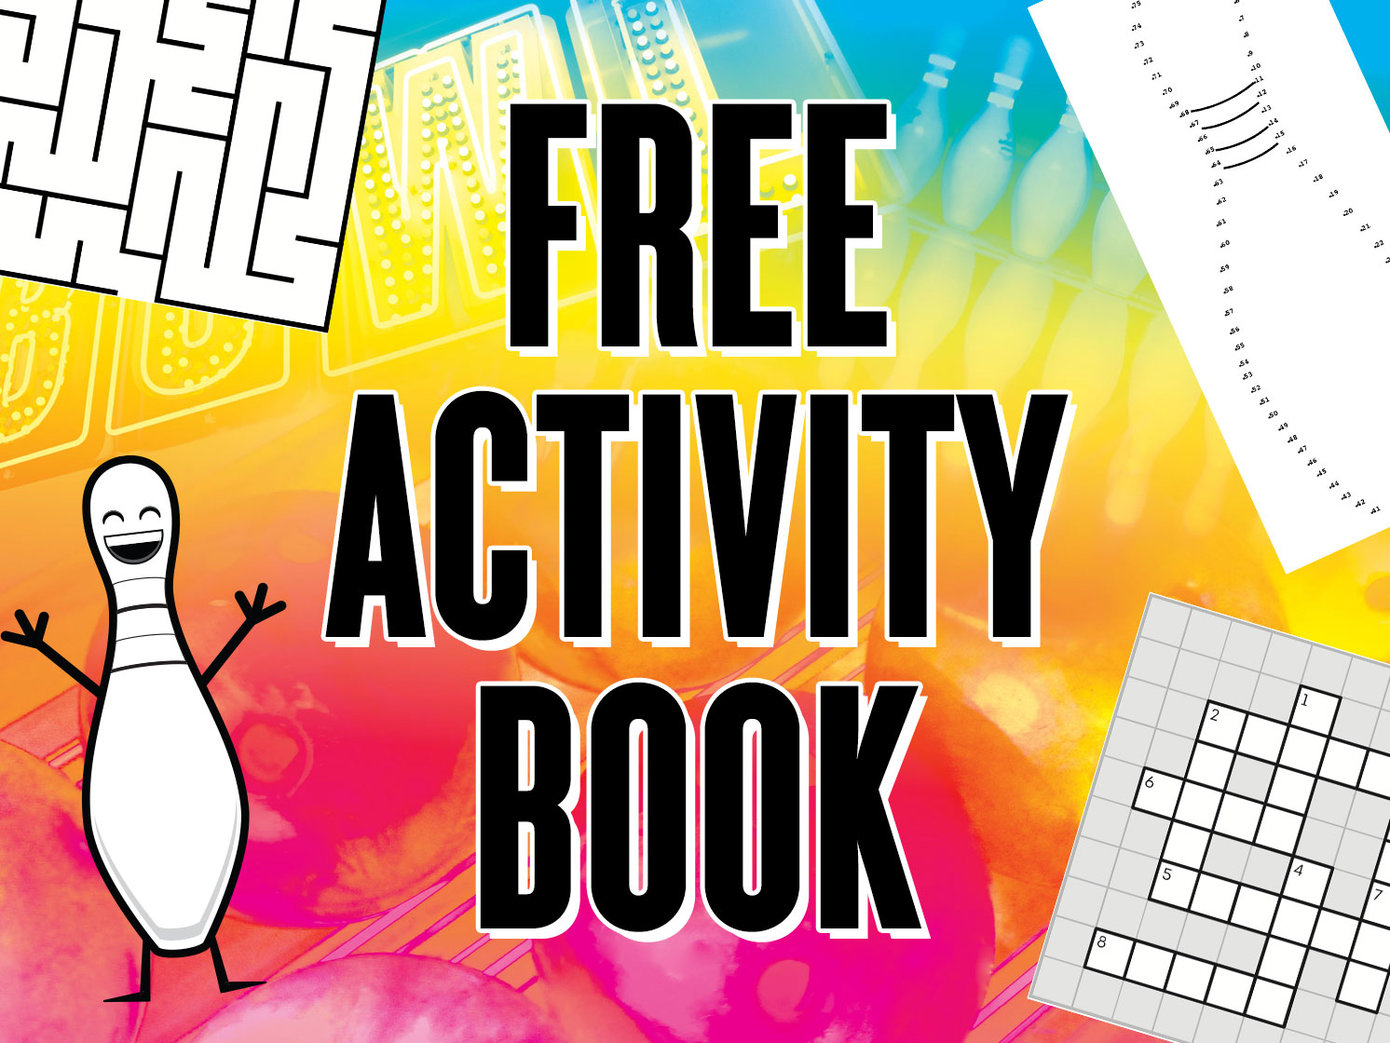 Text: Free Activity Book. Images of a crossword puzzle, maze, connect the dots puzzle, and a cartoon pin